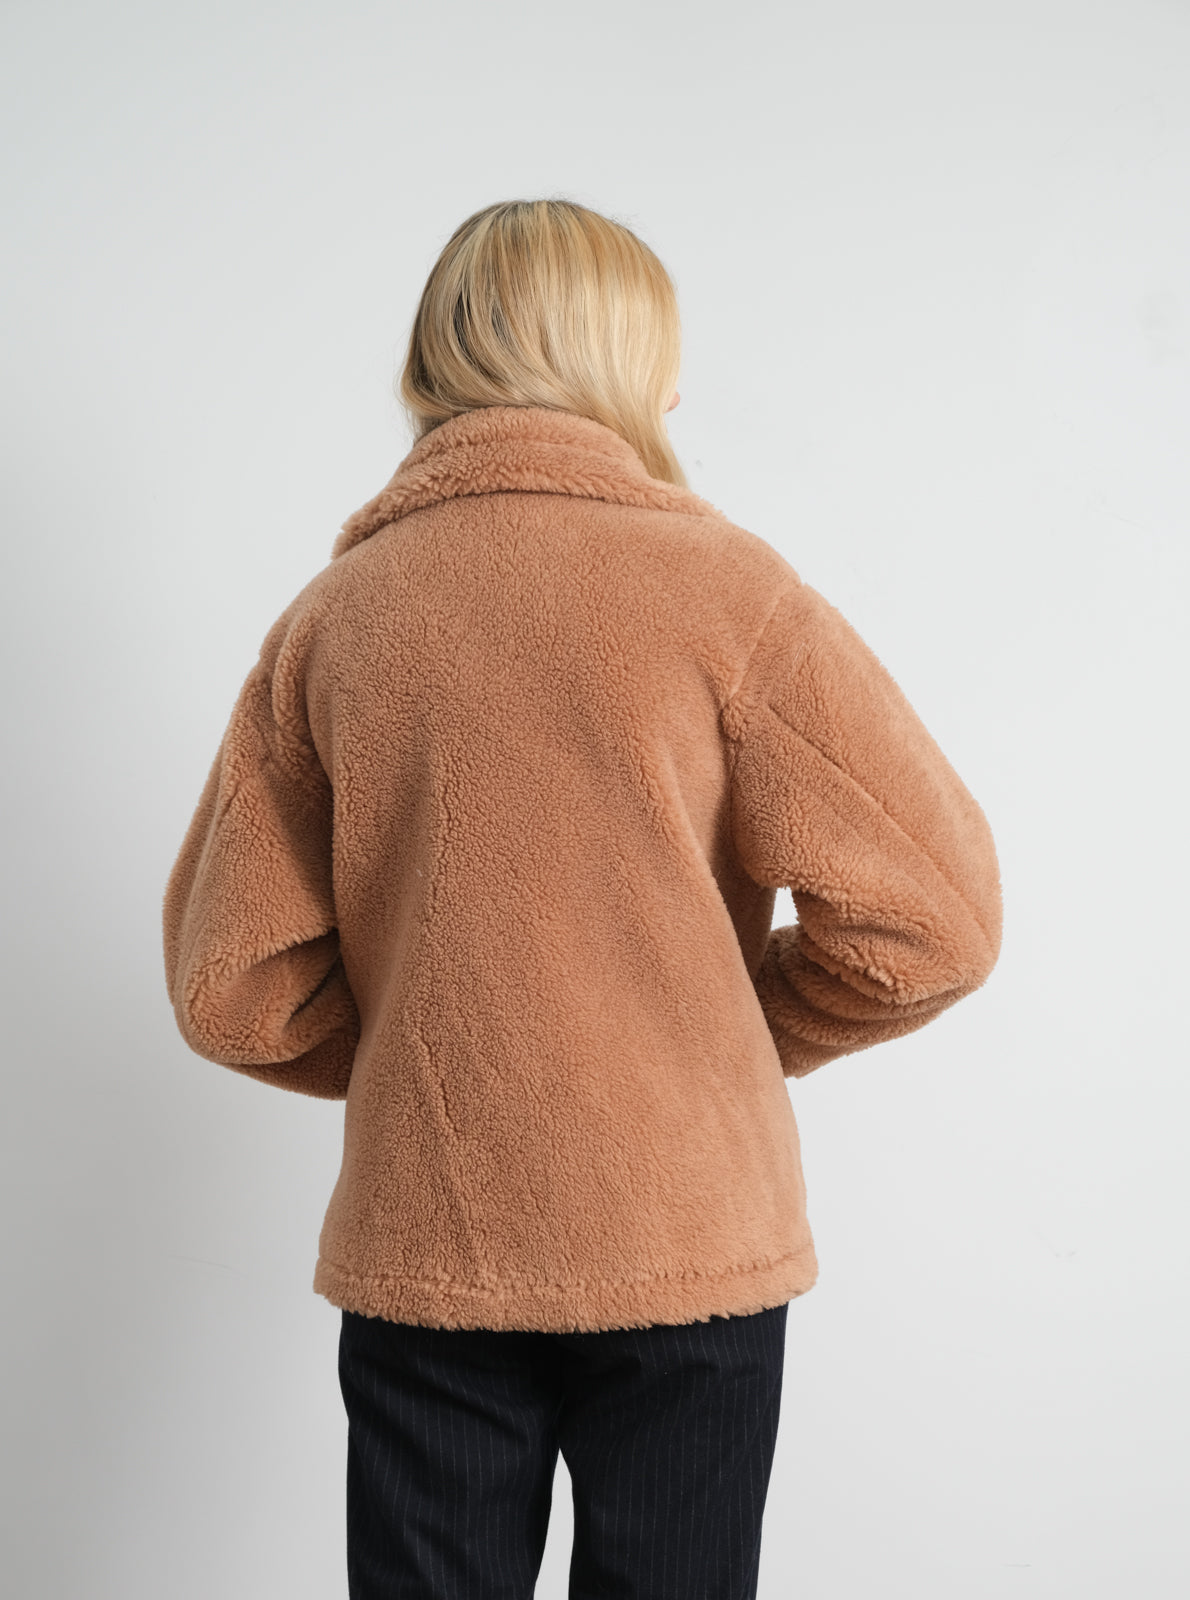 STAND Marina jacket in sand